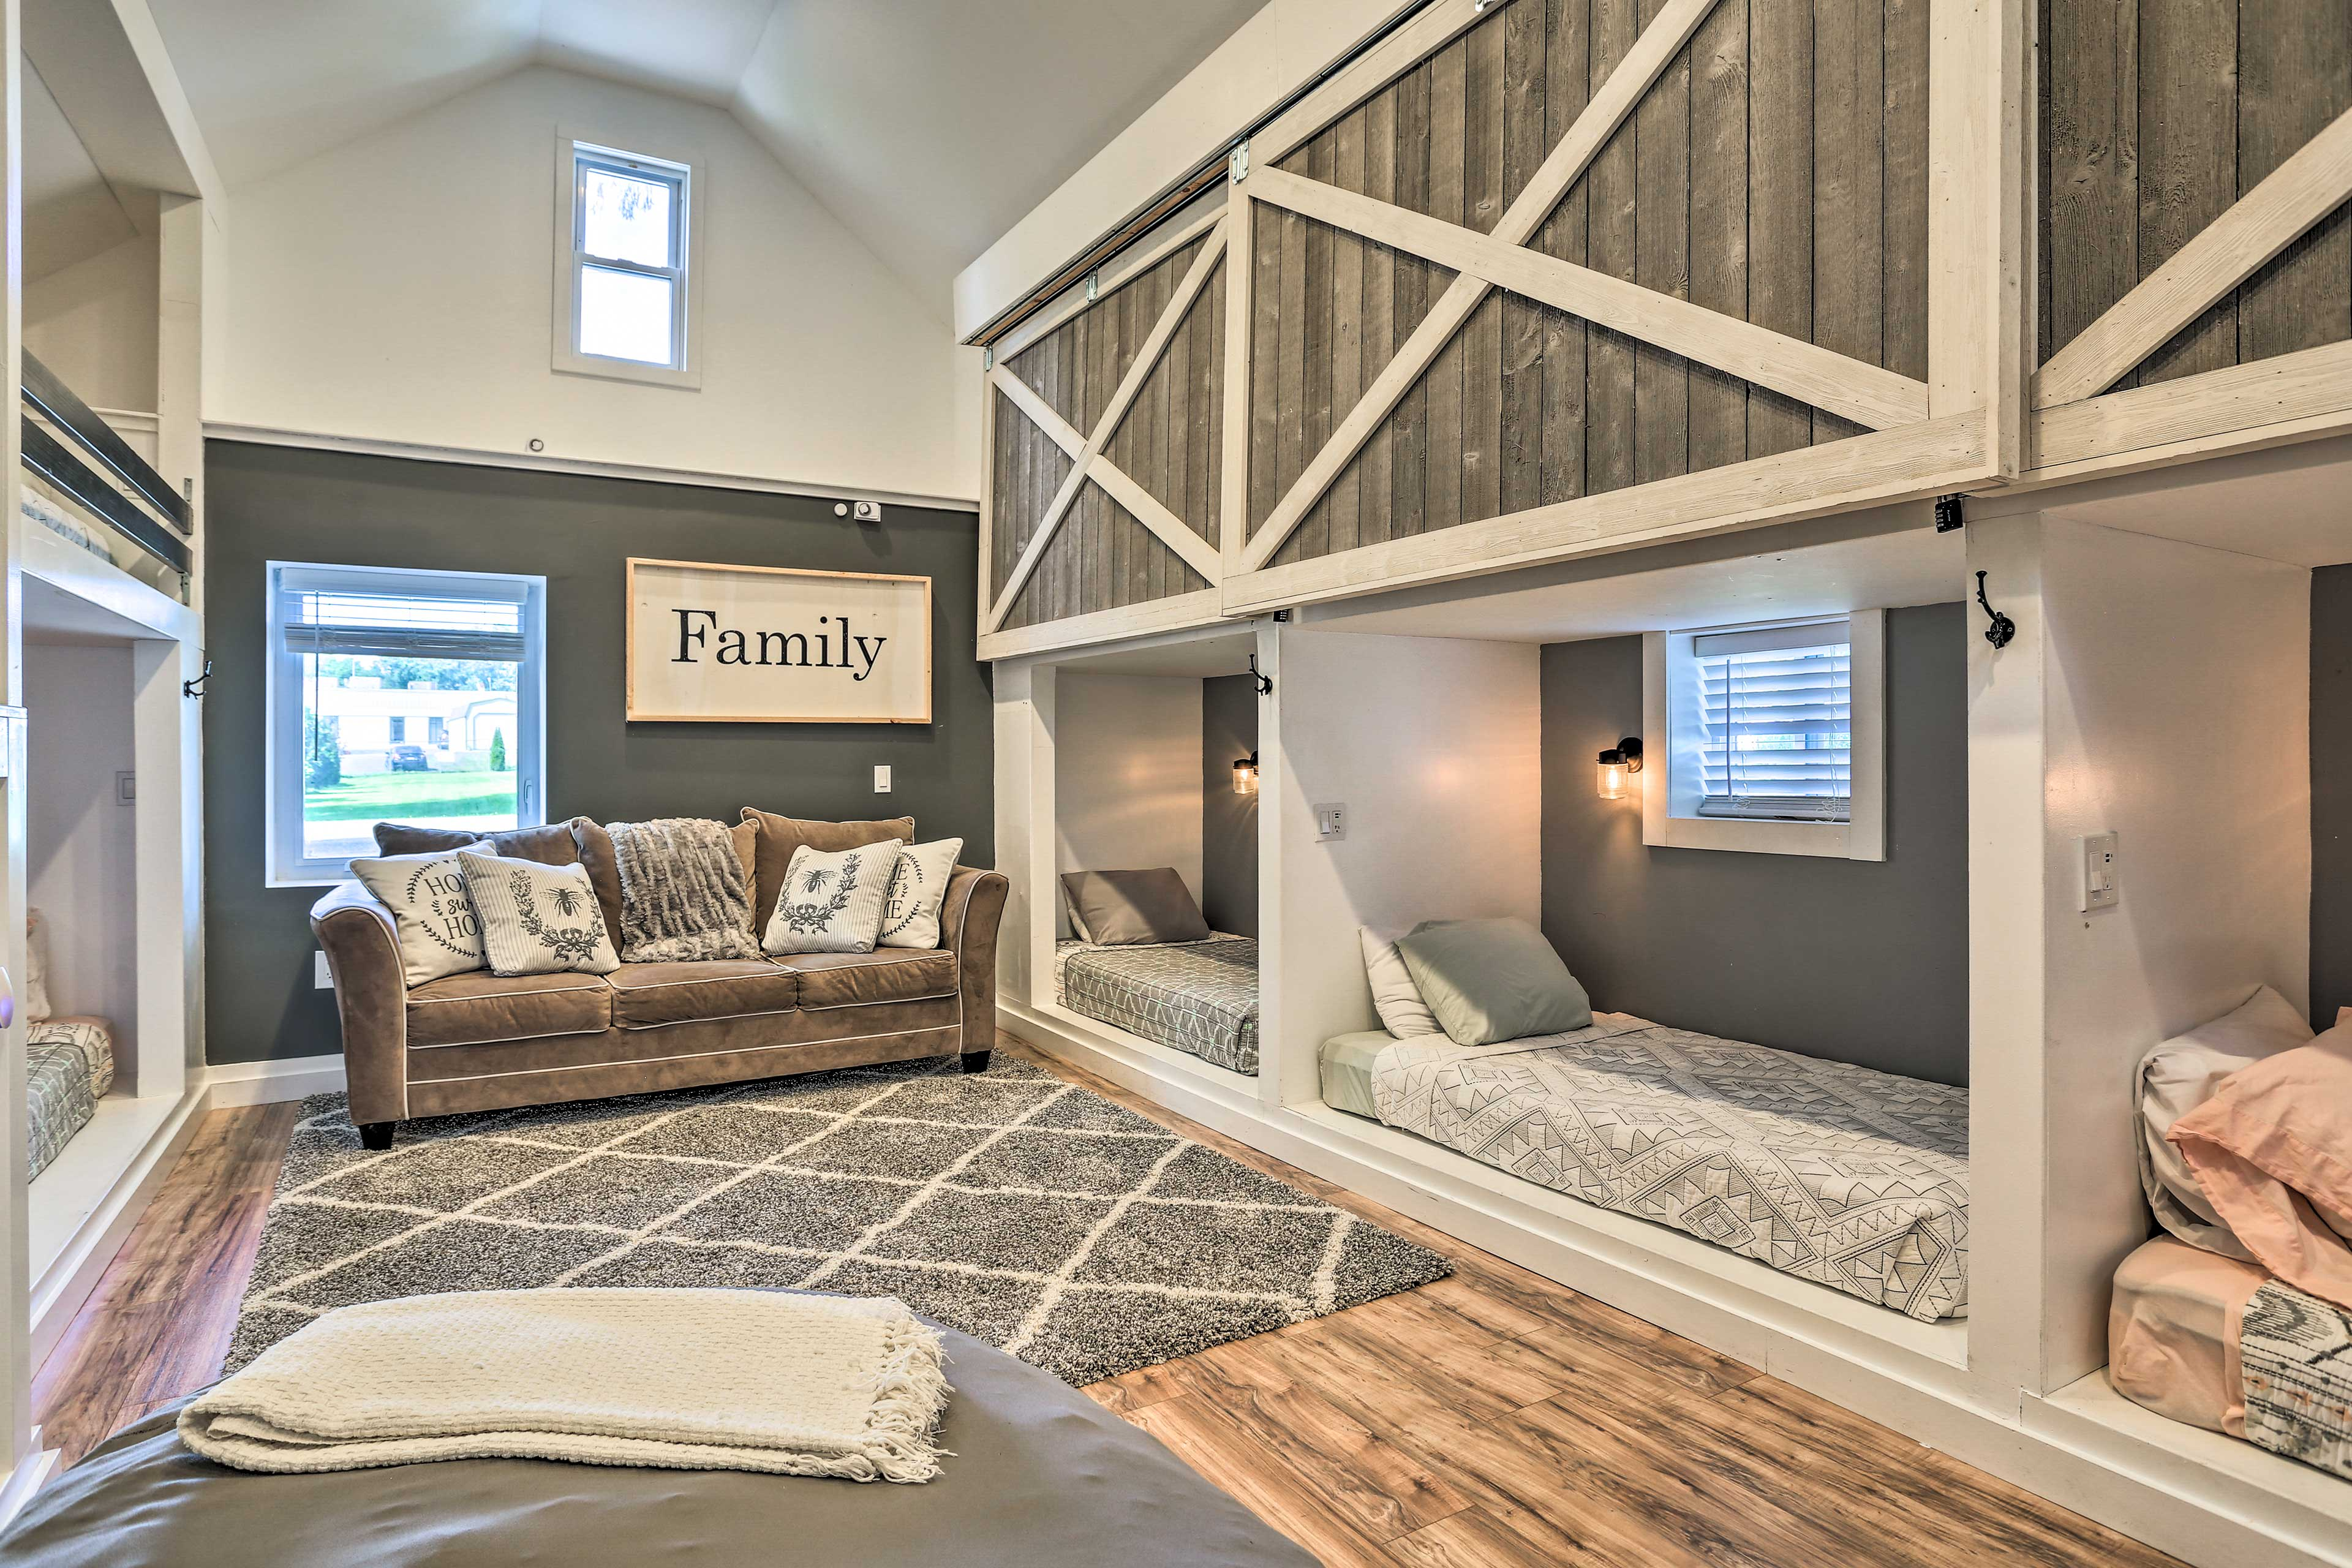 This room sleeps 7 on 5 twin beds and the sleeper sofa, great for the kids!